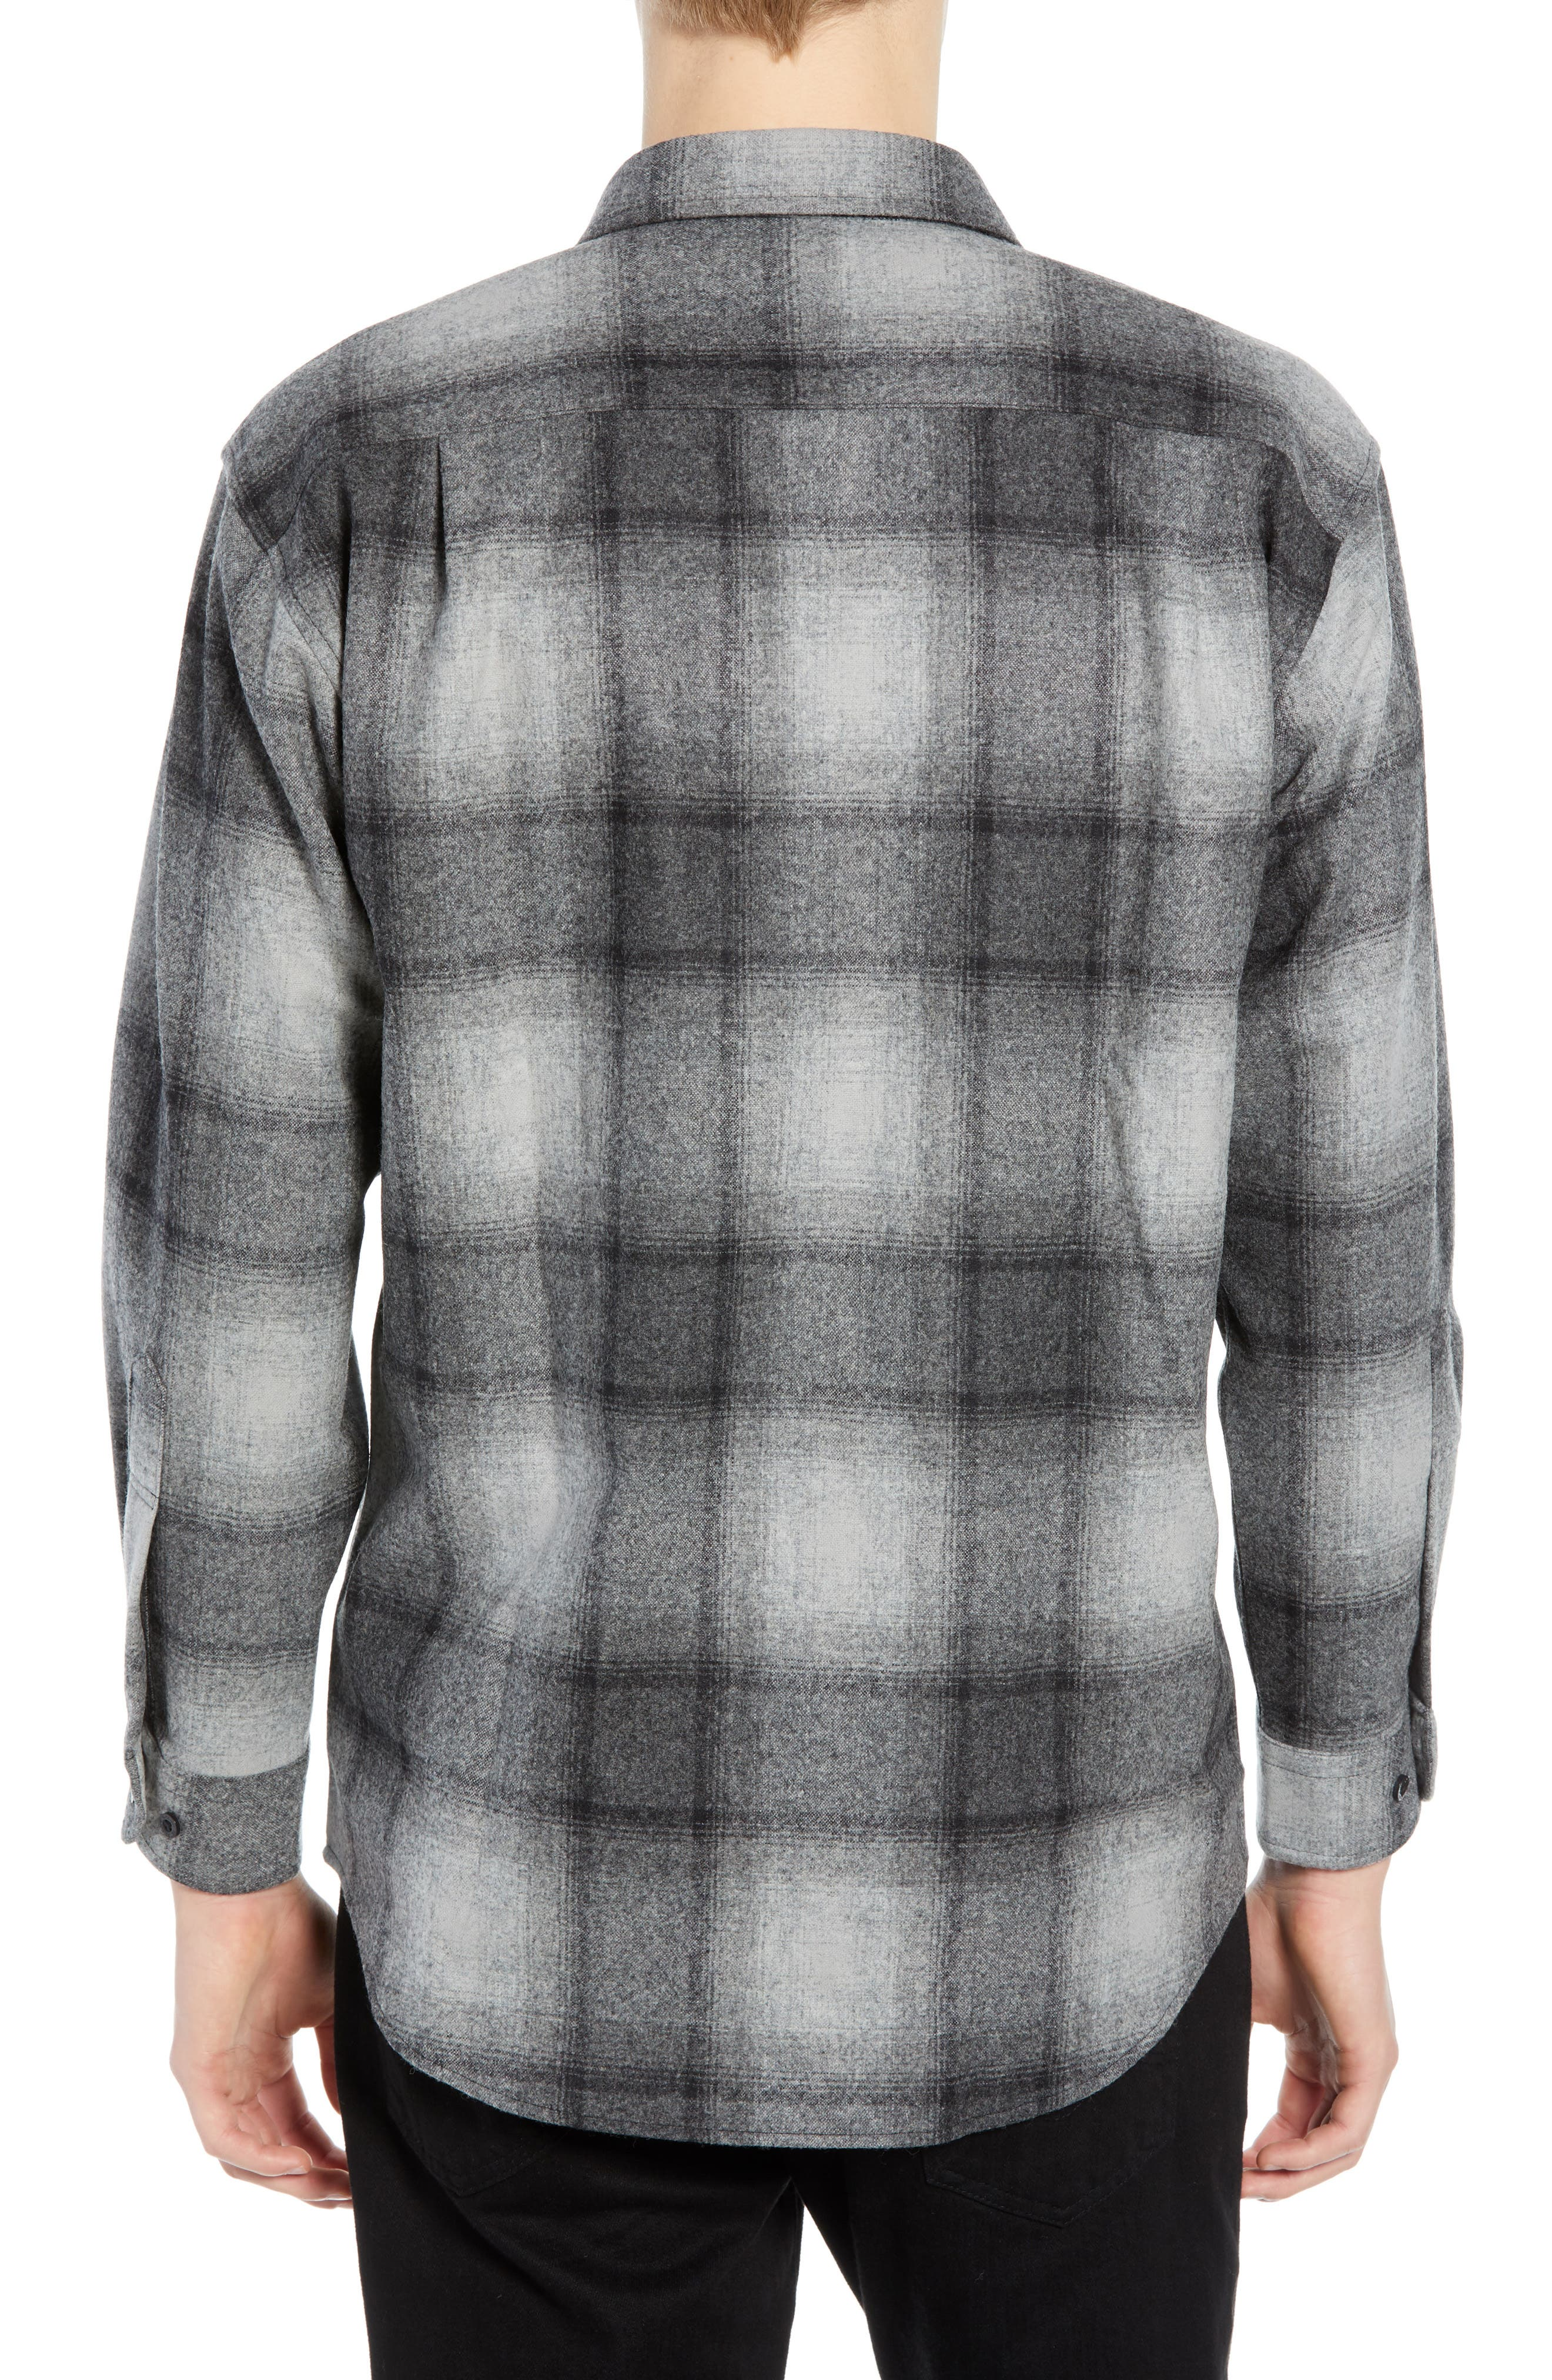 Lodge Wool Flannel Shirt,                             Alternate thumbnail 3, color,                             BLACK/ GREY MIX OMBRE